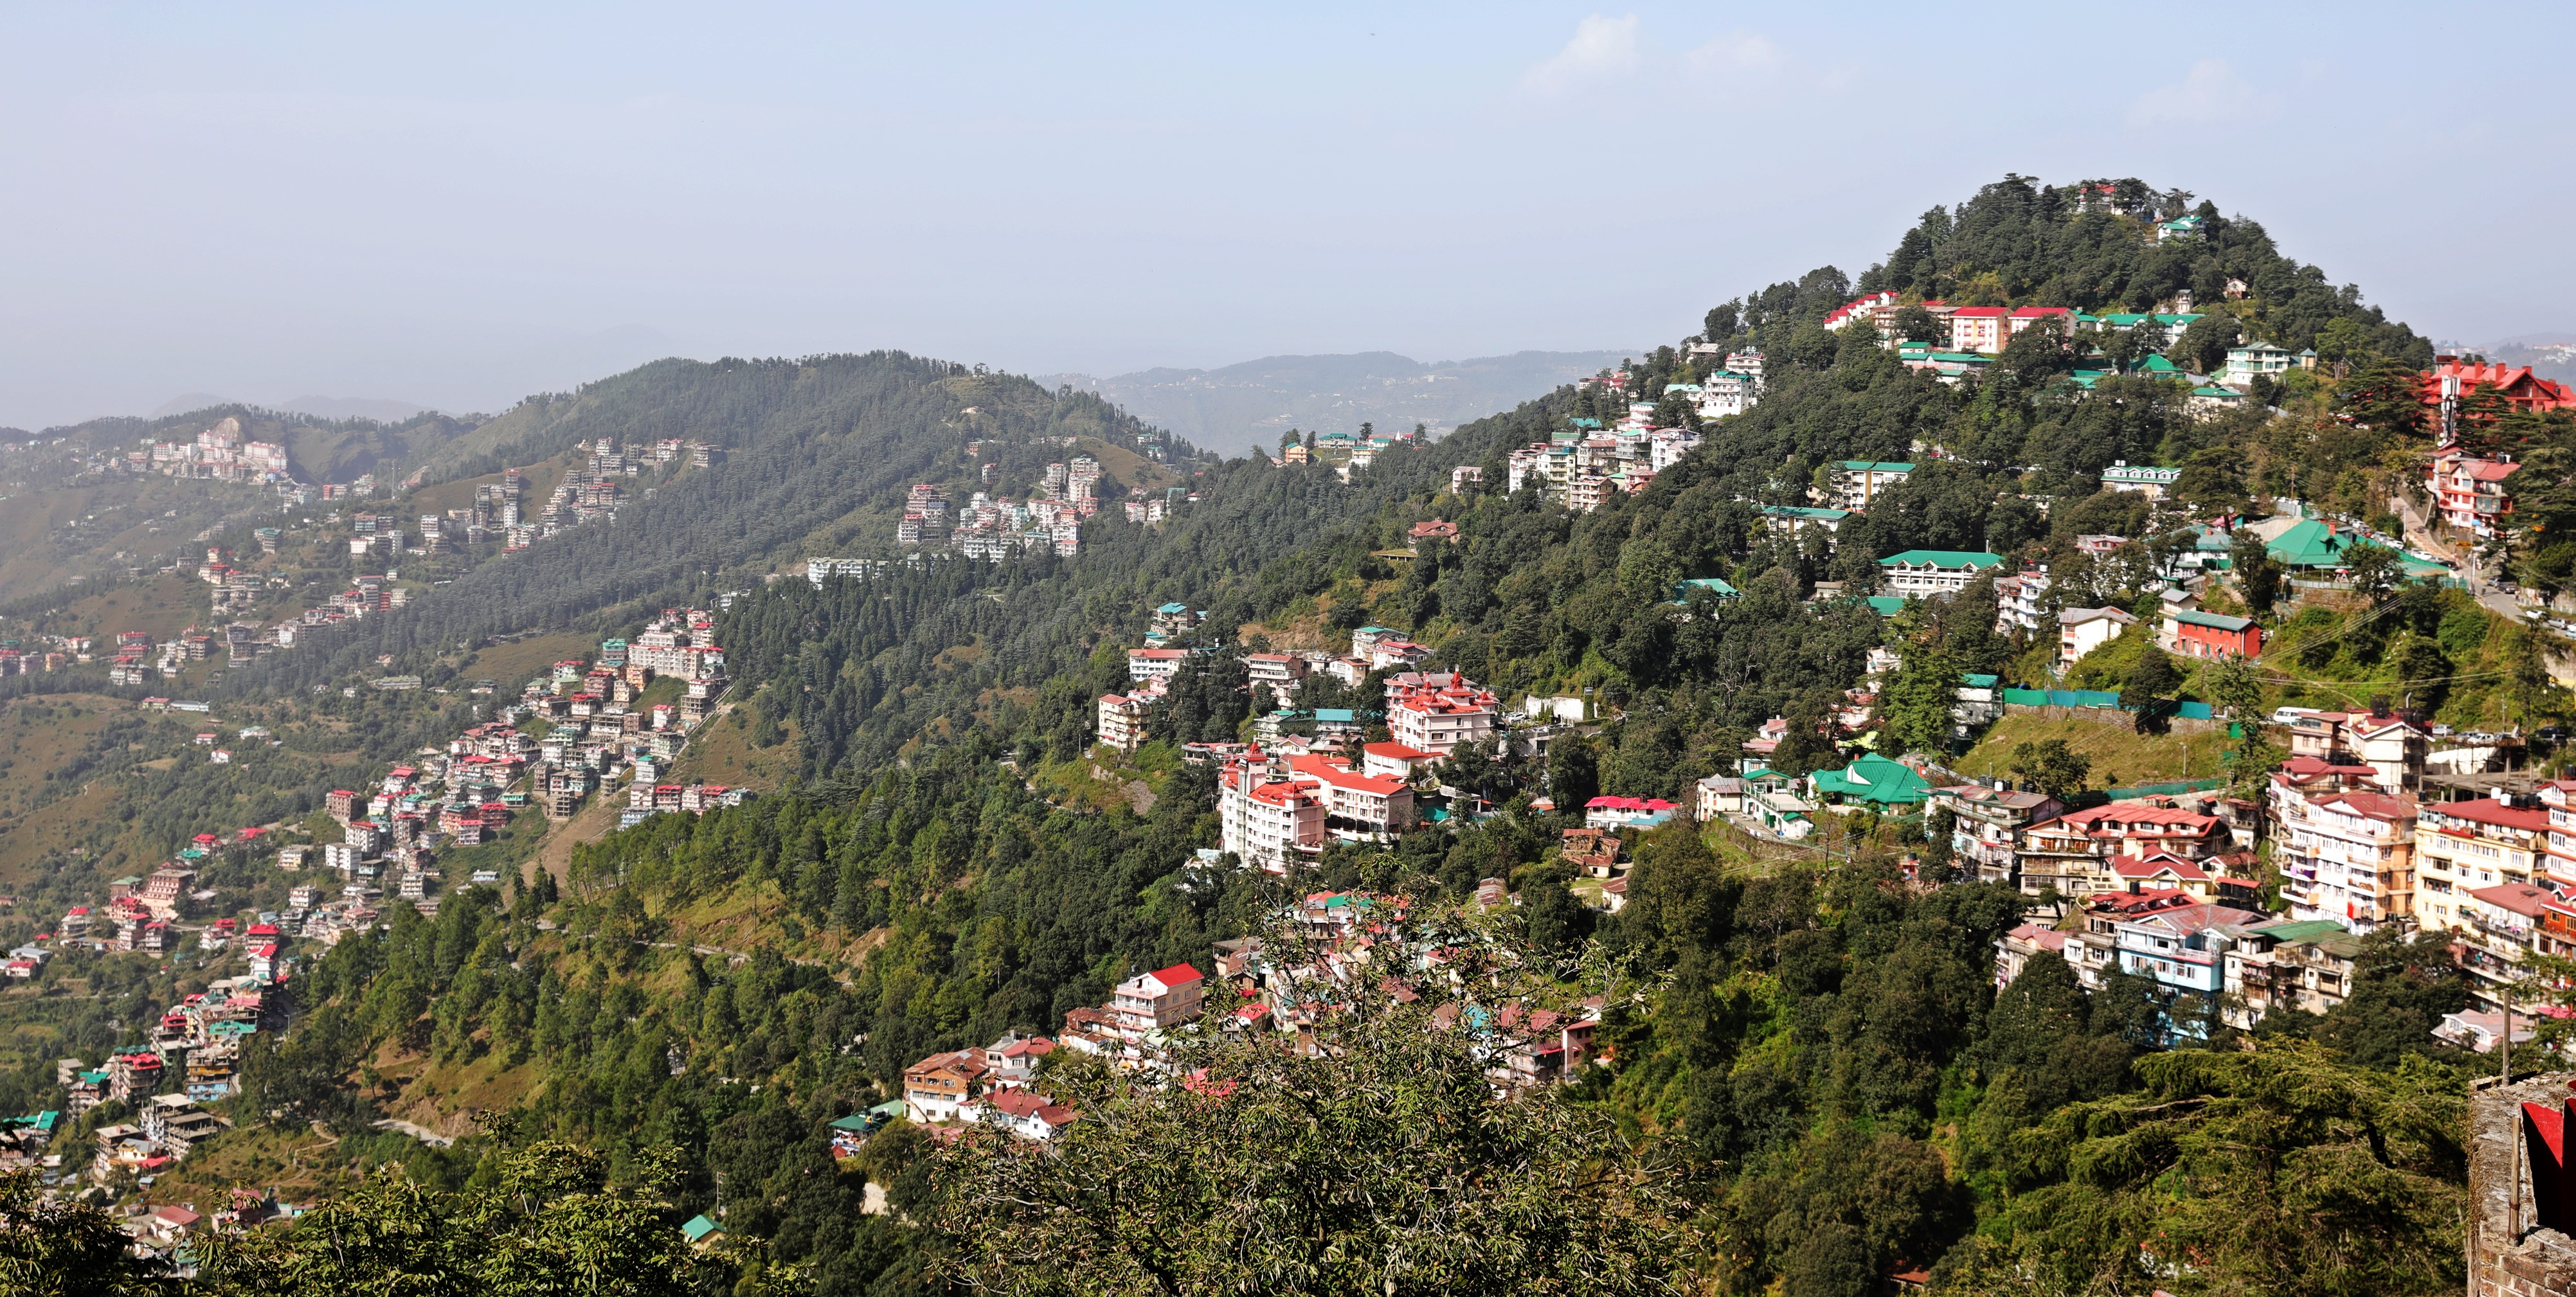 City on the other side of the ridge from Shimla